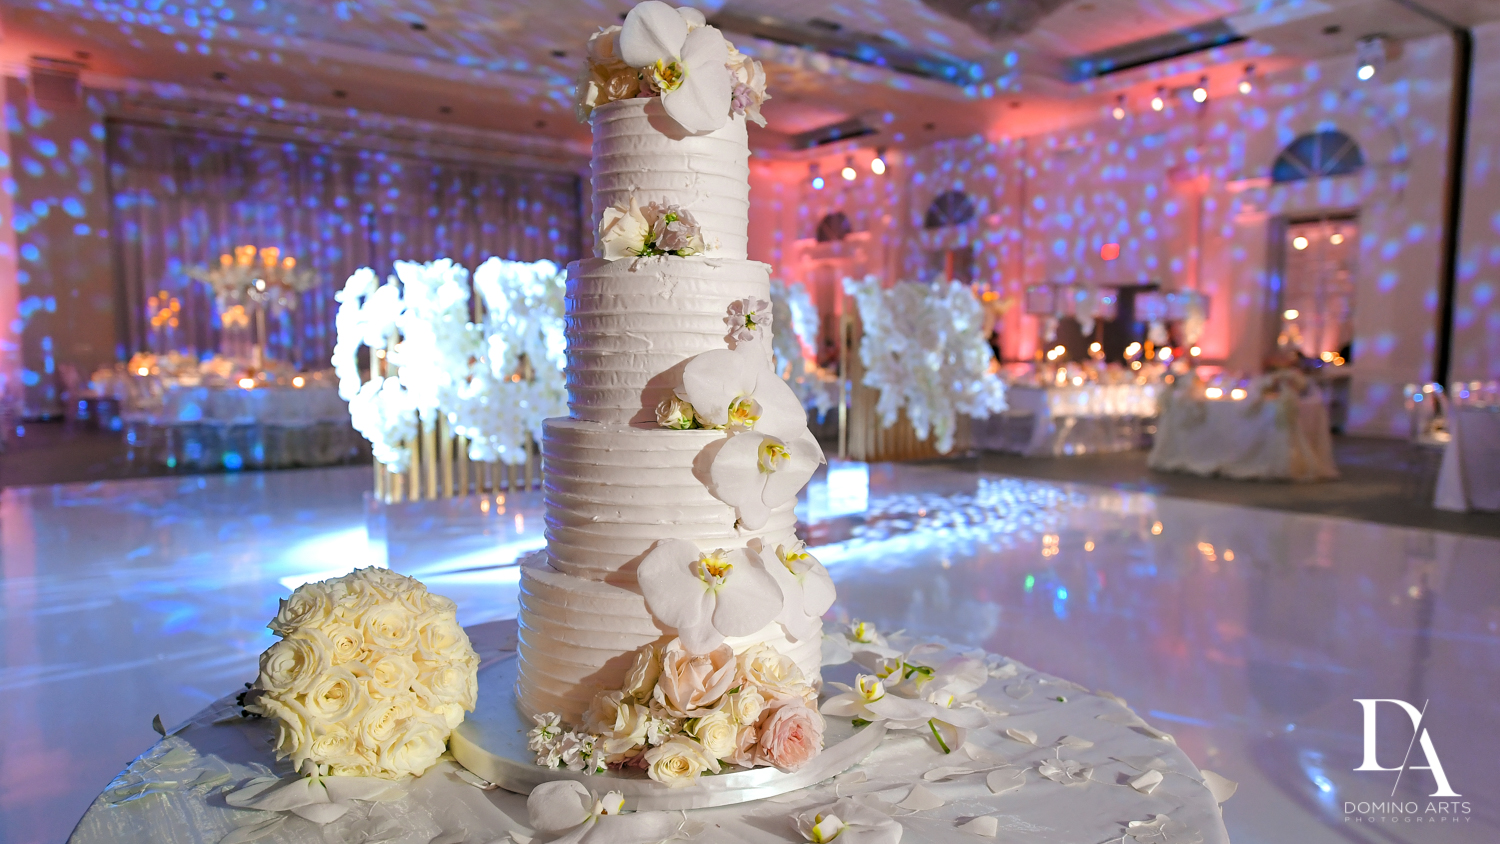 white wedding cake at Lavish Flowers & Crystals Wedding at Aventura Turnberry Jewish Center by Domino Arts Photography